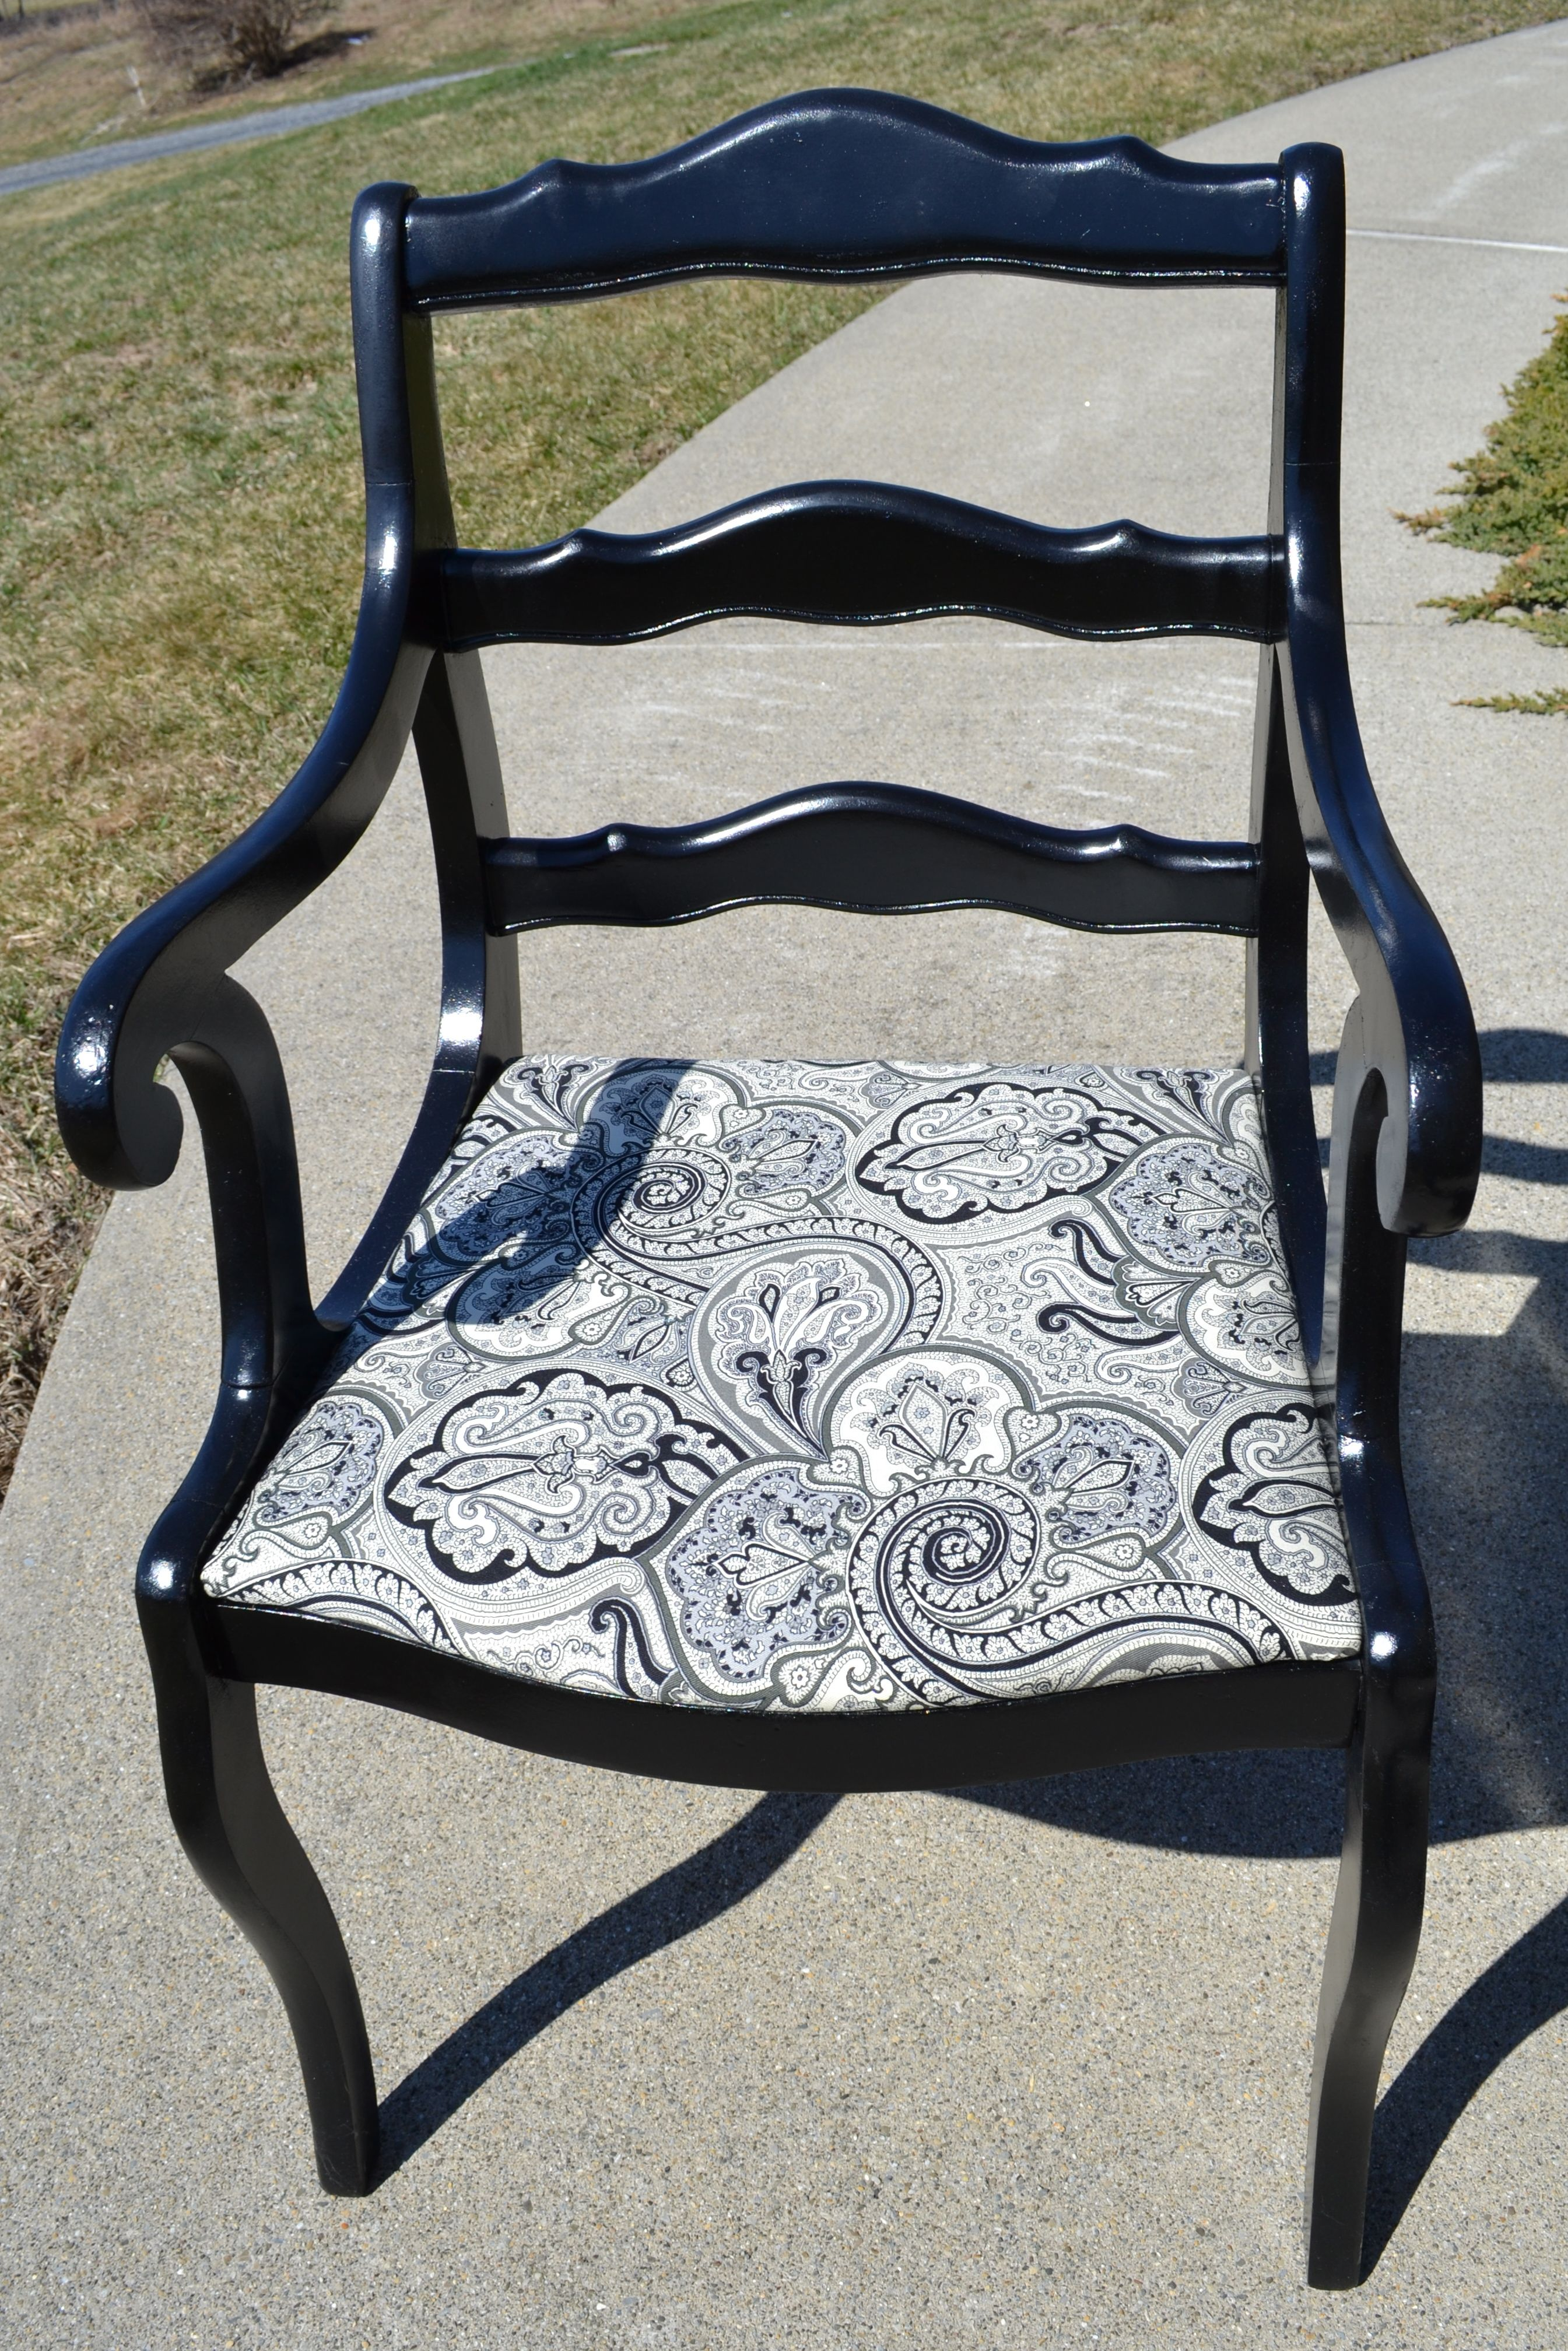 Black And White Paisley Chair Blue Outdoor Cushions Repurposed Vintage Lacquer Paint